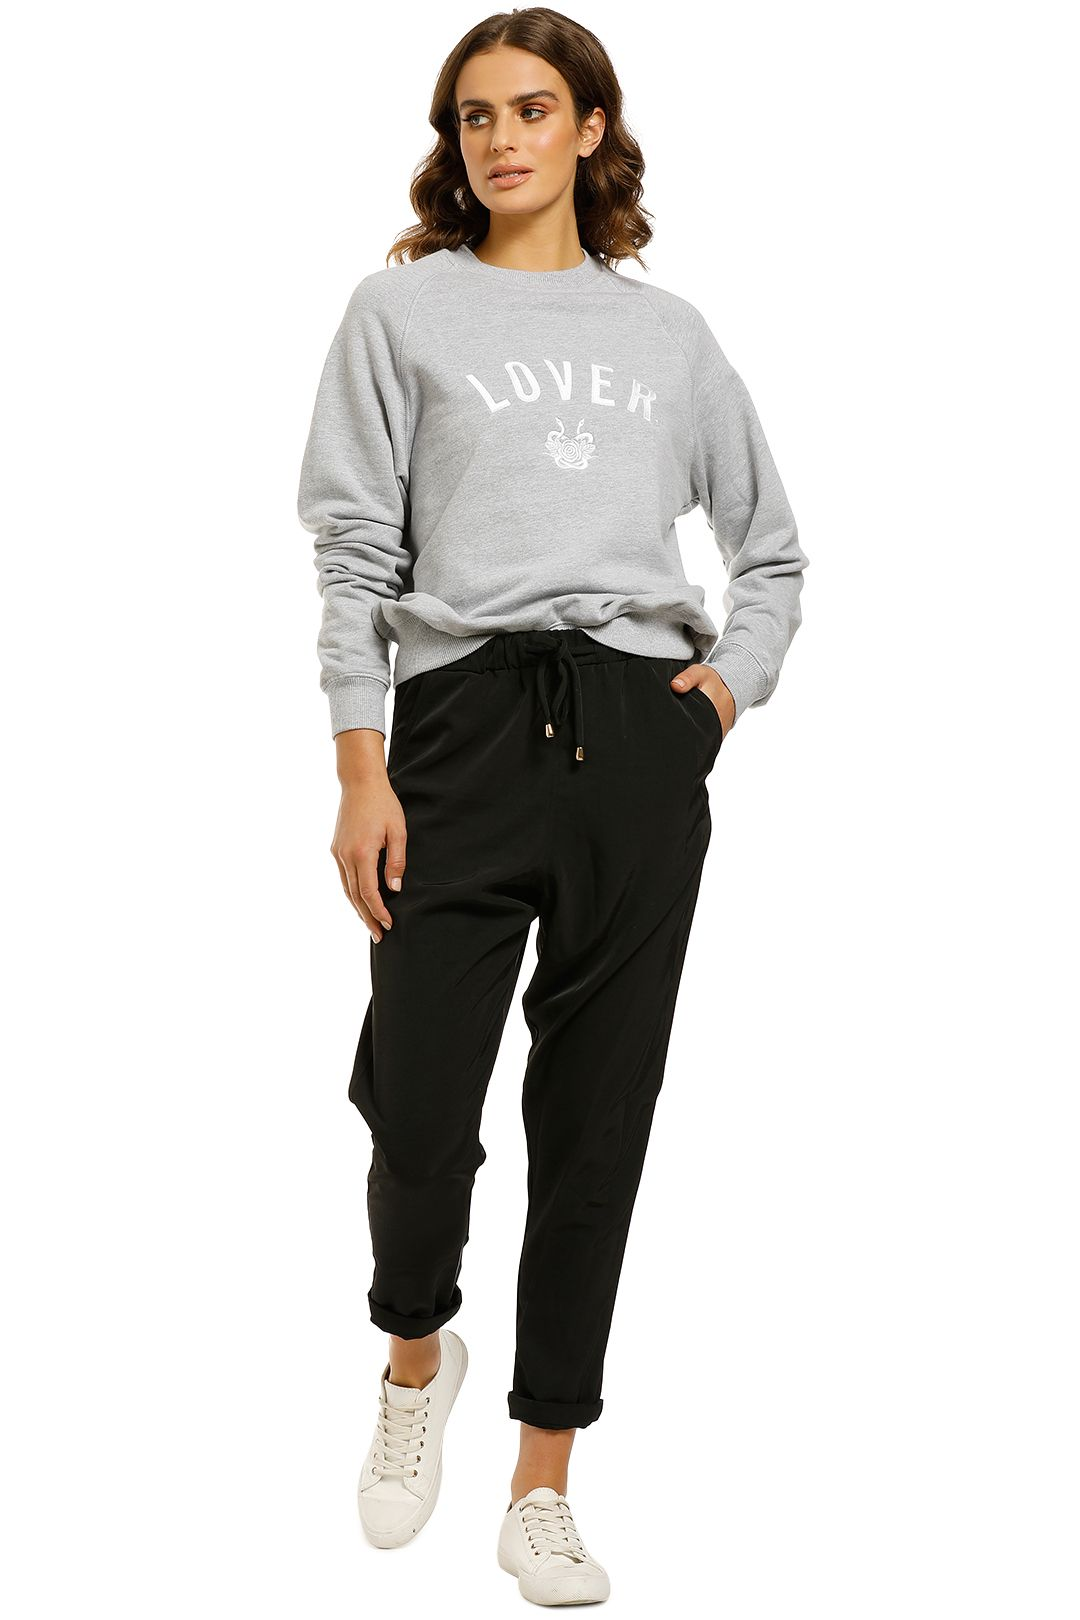 Lover-Embroidered-Sweat-Grey-Front